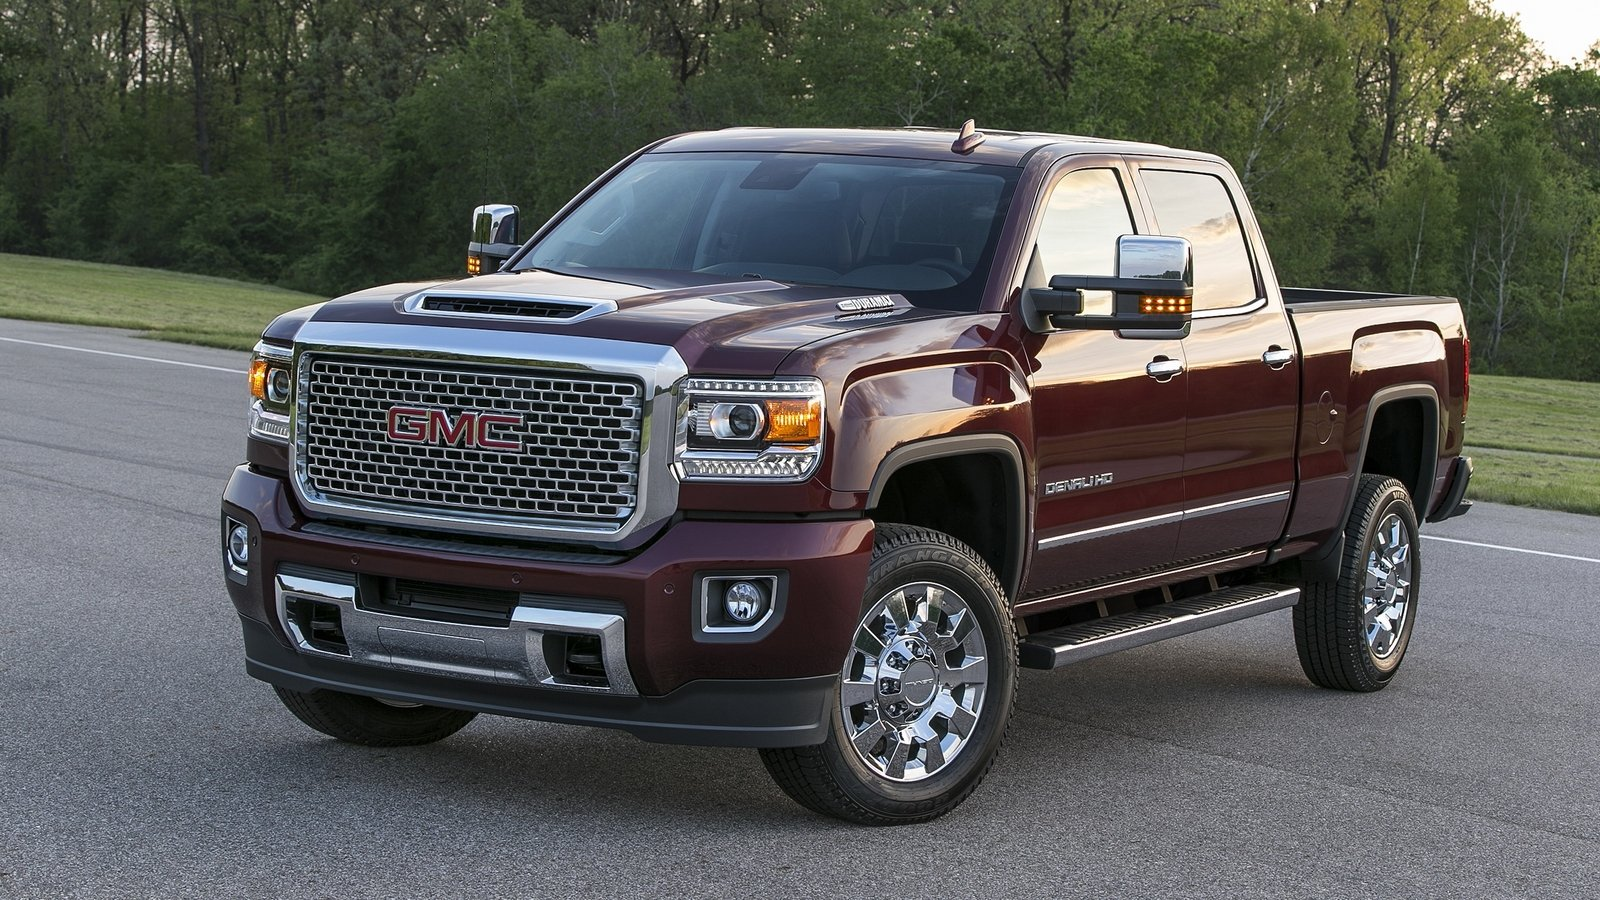 2017 gmc sierra denali 2500hd picture 678259 truck review top 2017 2018 best cars reviews. Black Bedroom Furniture Sets. Home Design Ideas